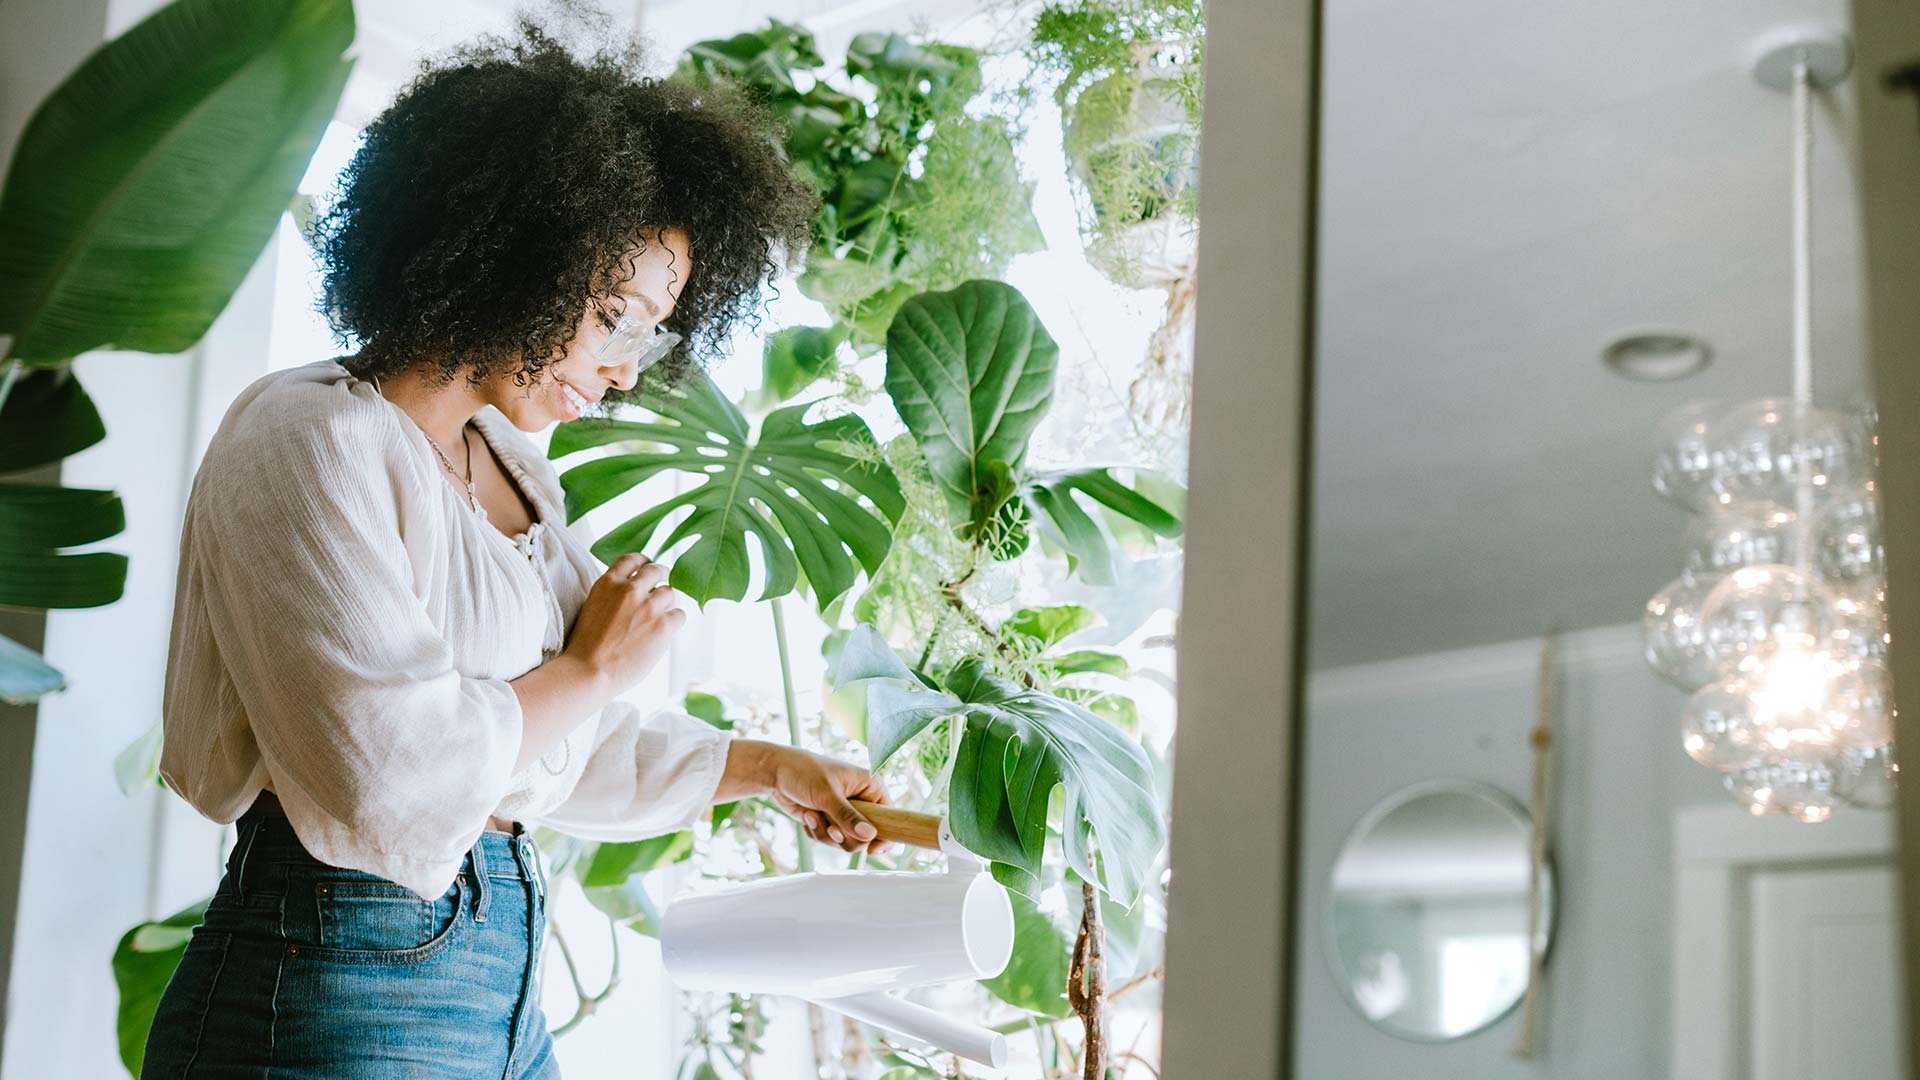 Houseplants Are Good for Your Physical and Mental Health